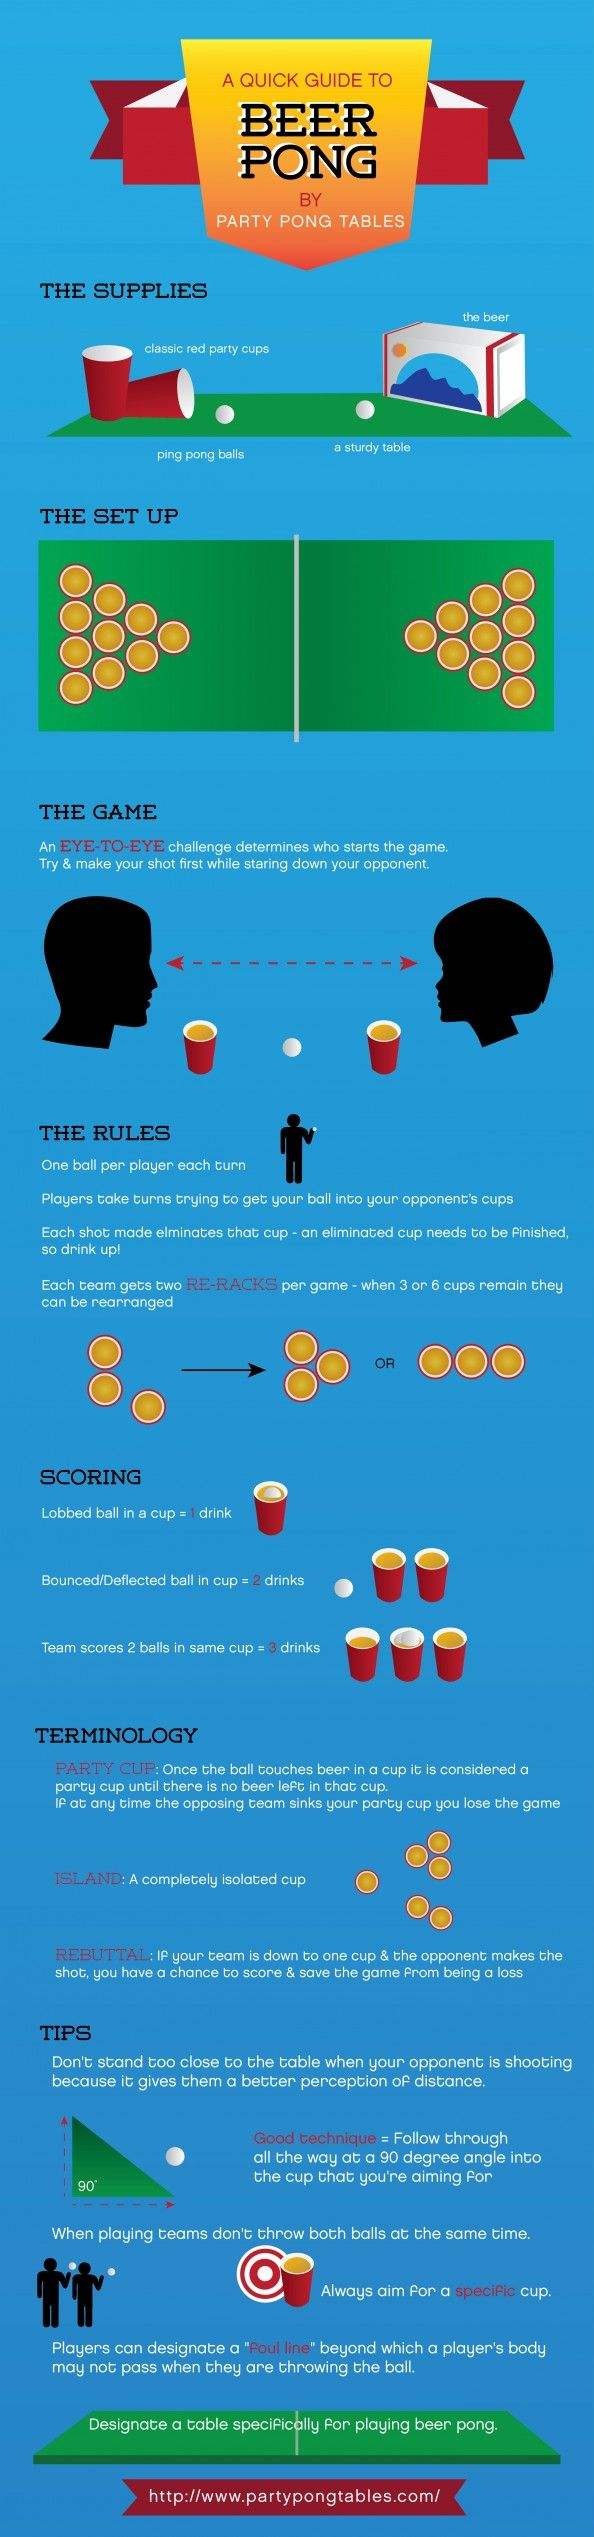 fo the beer lovers > a quick guide to #beerpong